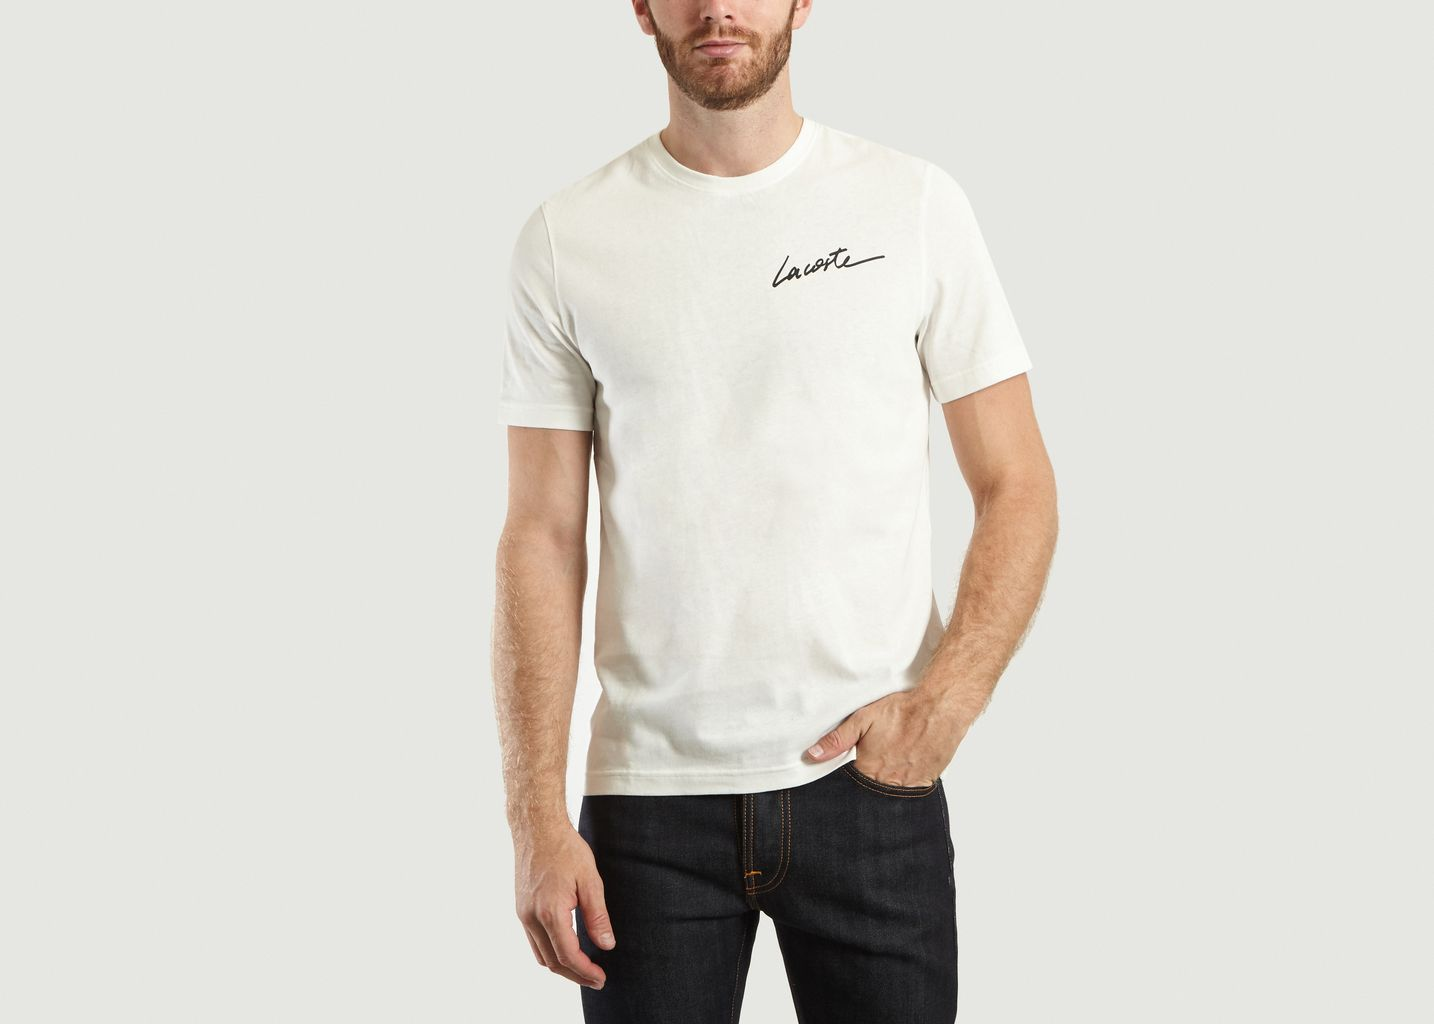 L'exception T Lacoste Live Blanc Shirt Signature XOO8xCwpq